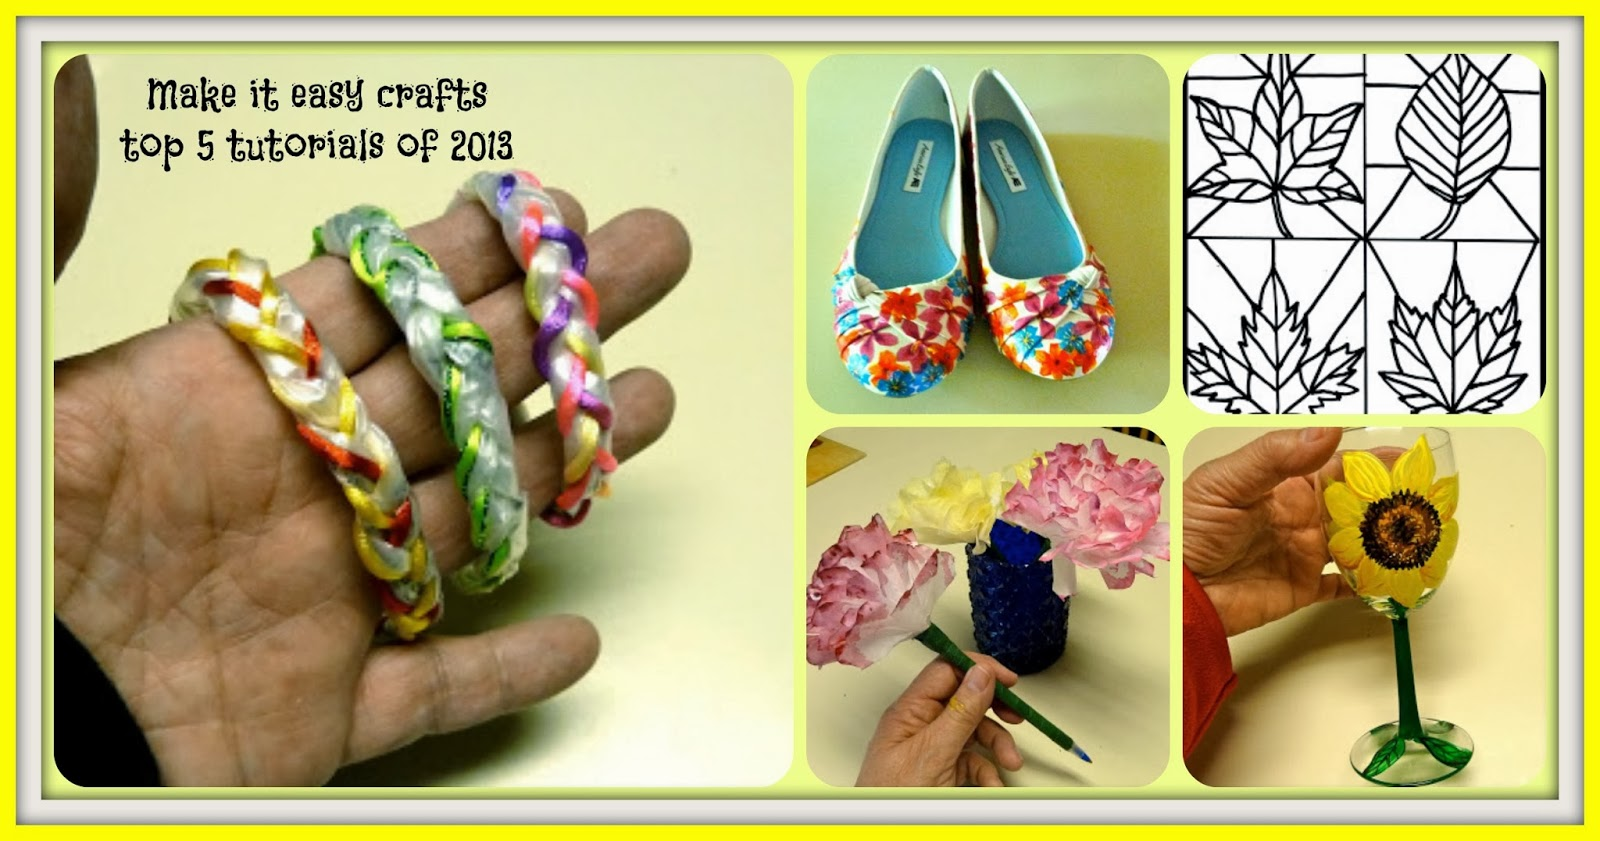 Make It Easy Crafts Make It Easy Crafts Top 5 Tutorials Of 2013